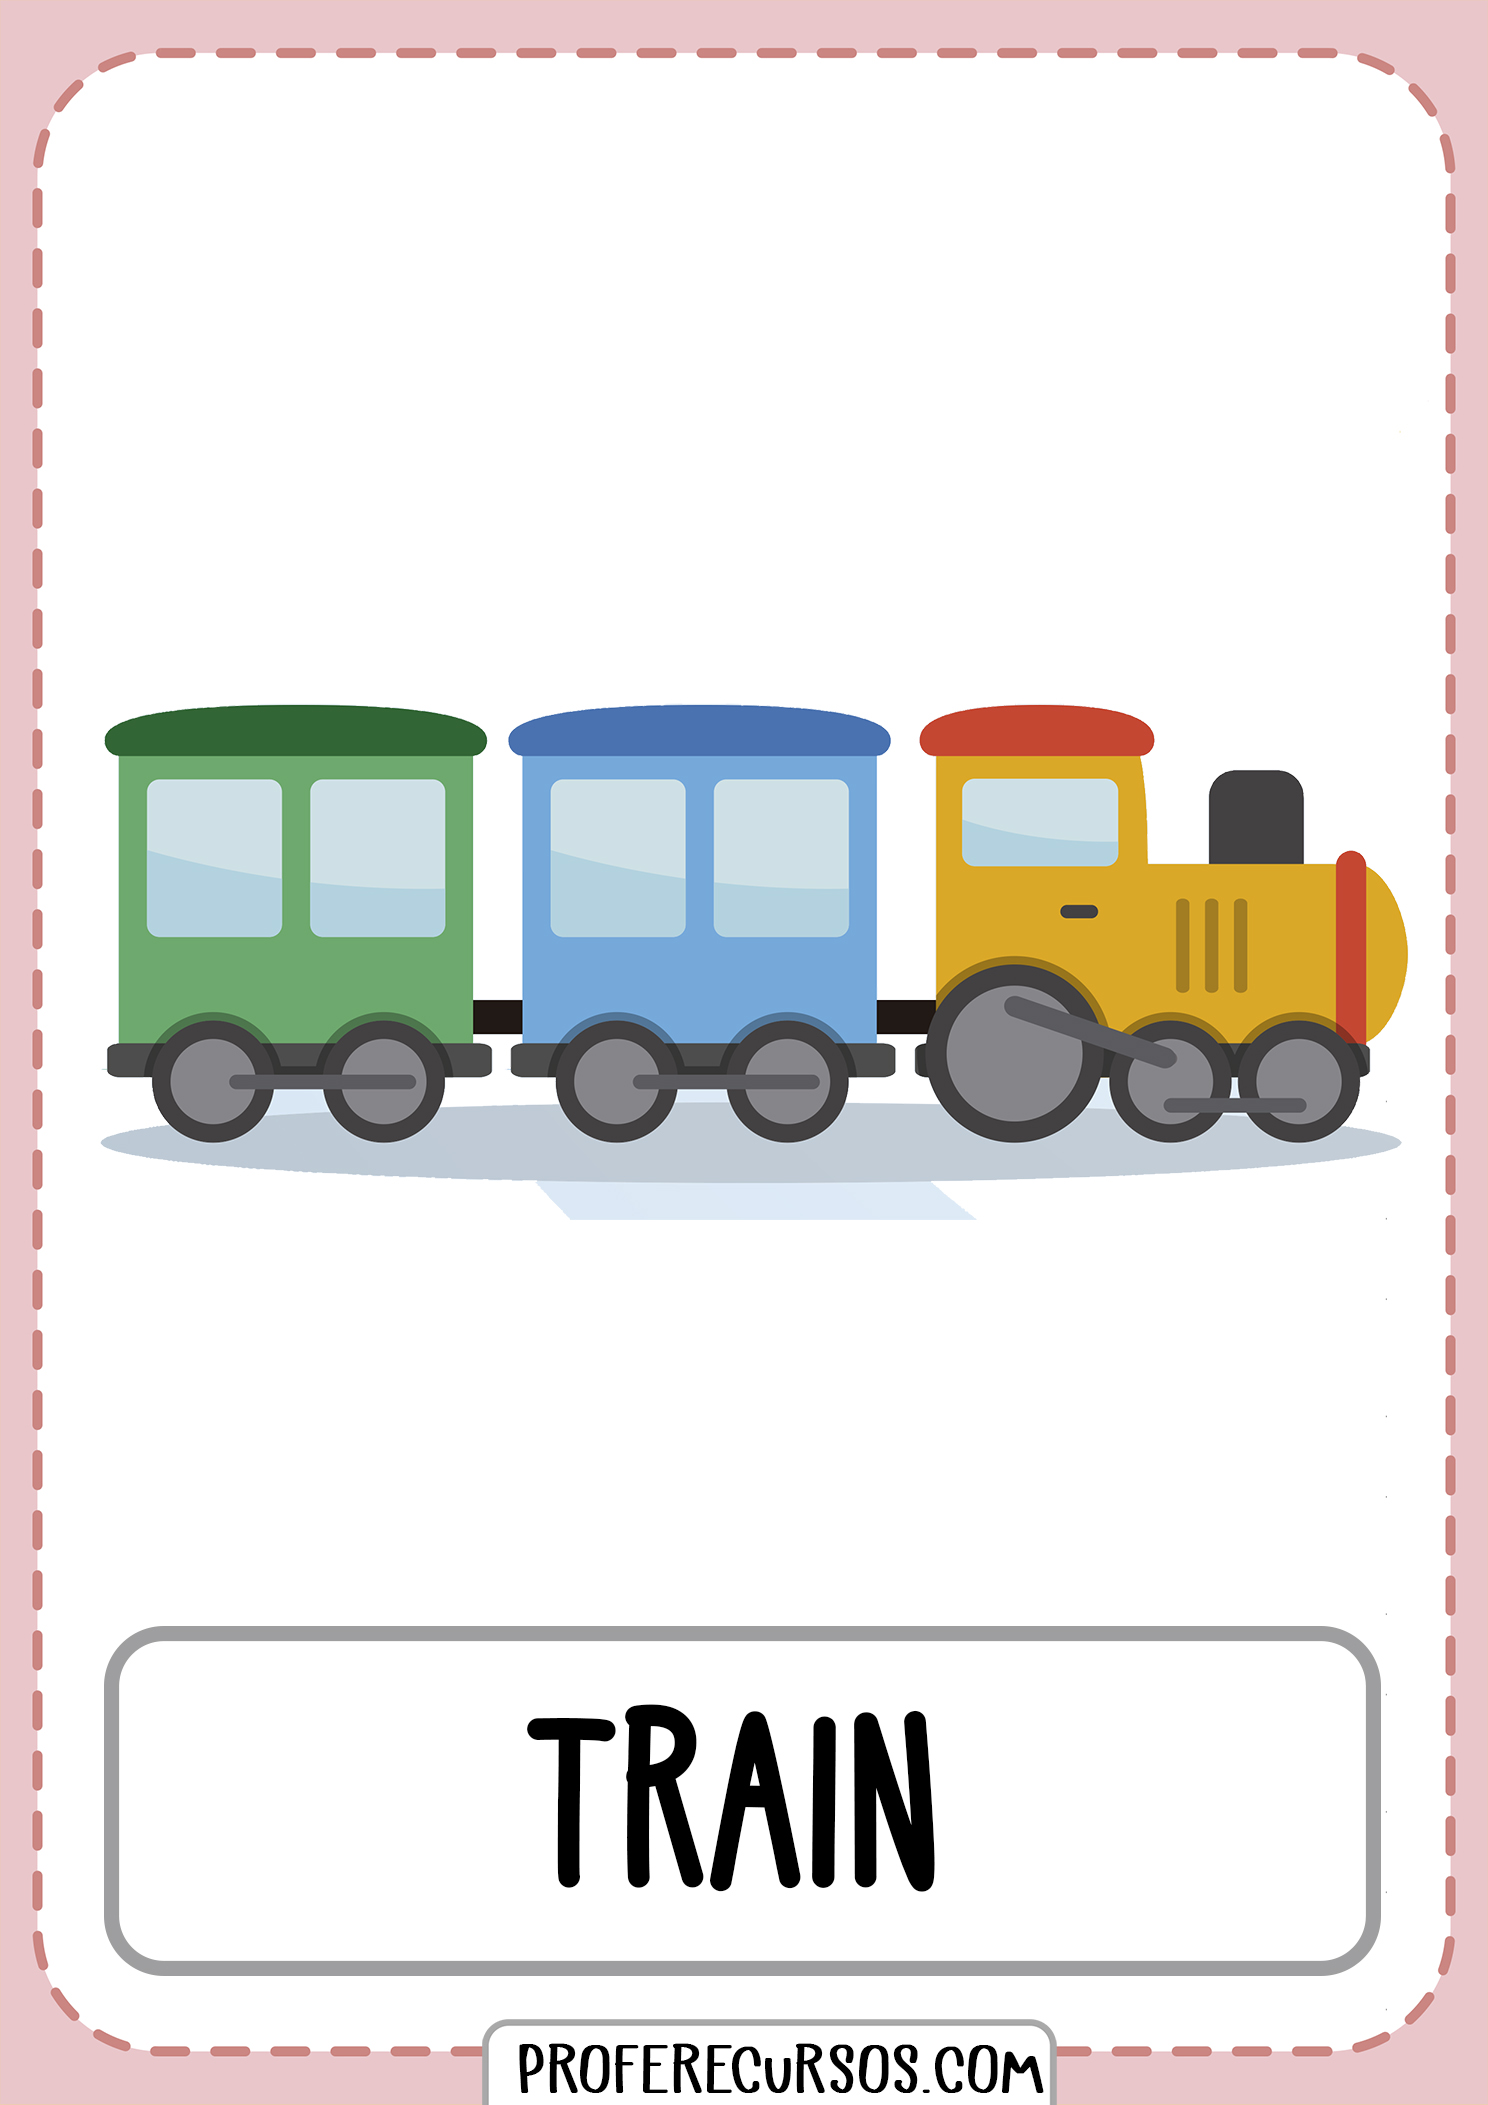 Means-of-transport-vocabulary-train